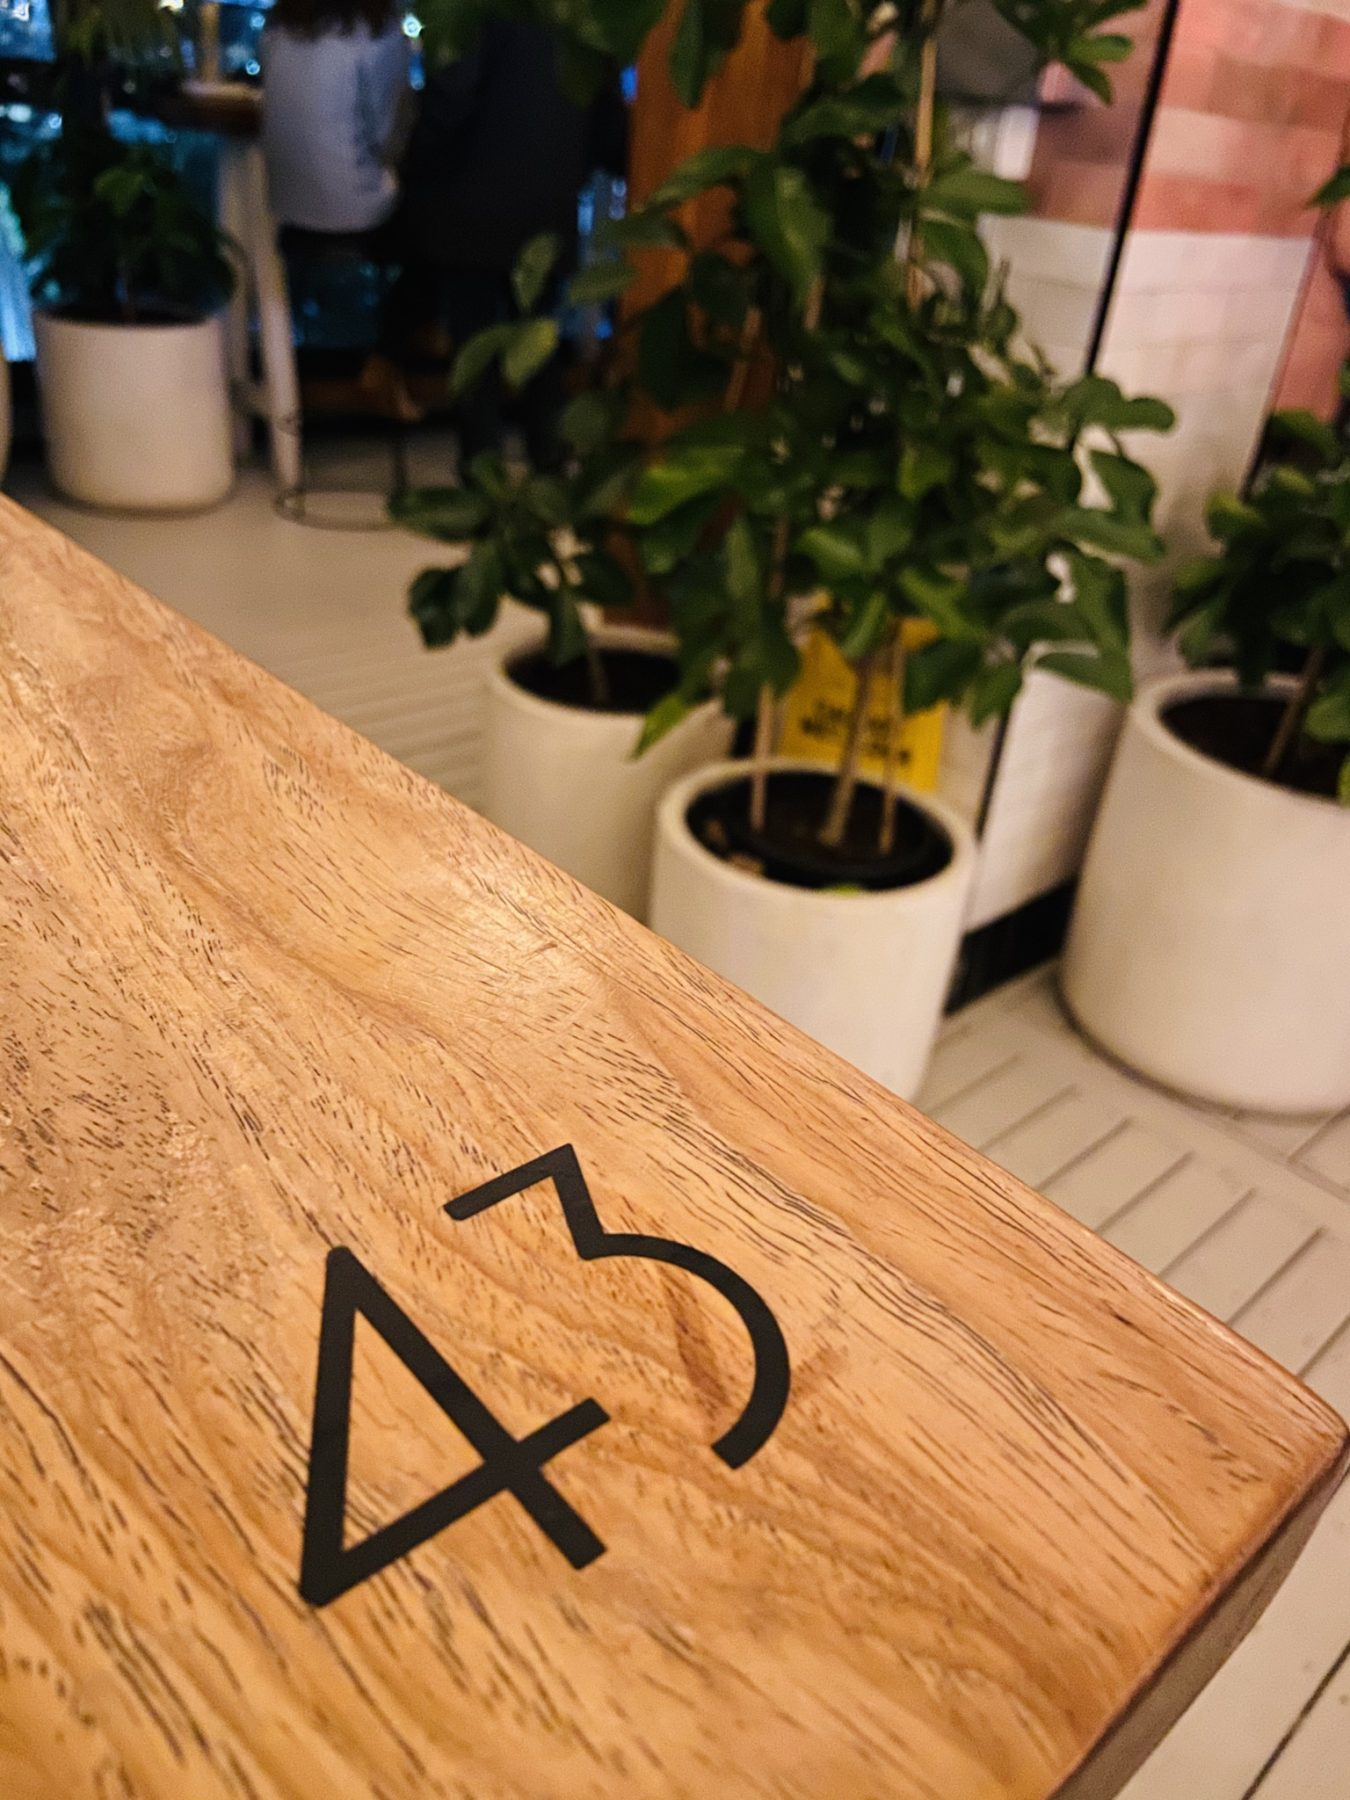 Saint Alice Table 43 - Viaduct Harbour (Auckland) - Where To Go